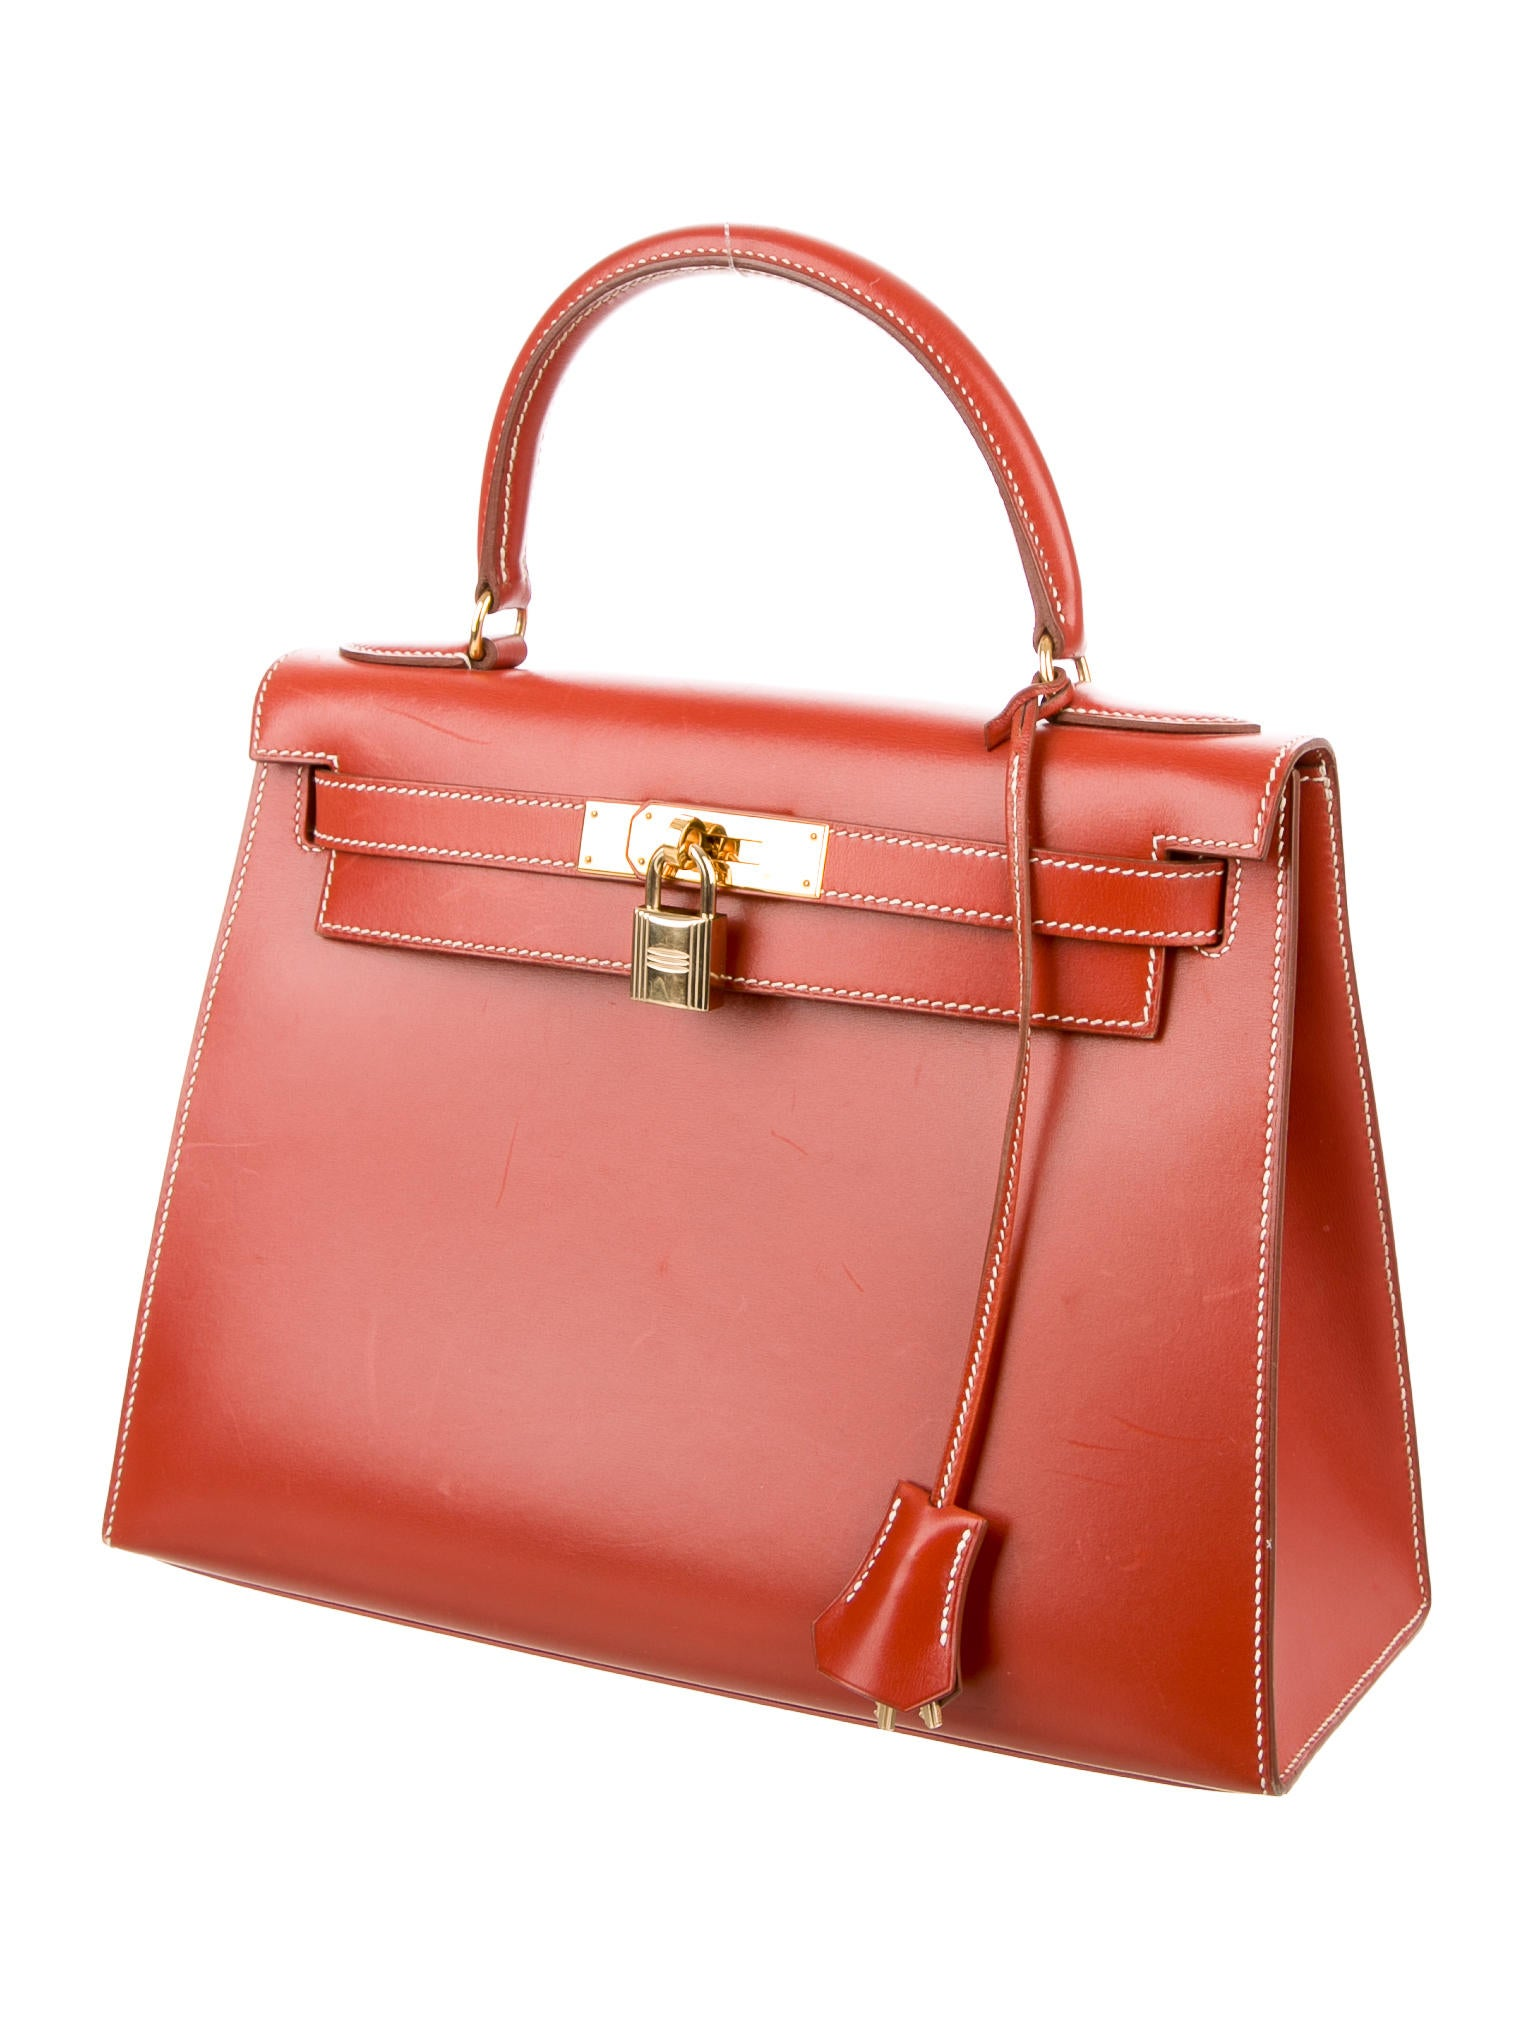 herm s kelly sellier 28   handbags   her79423 the realreal